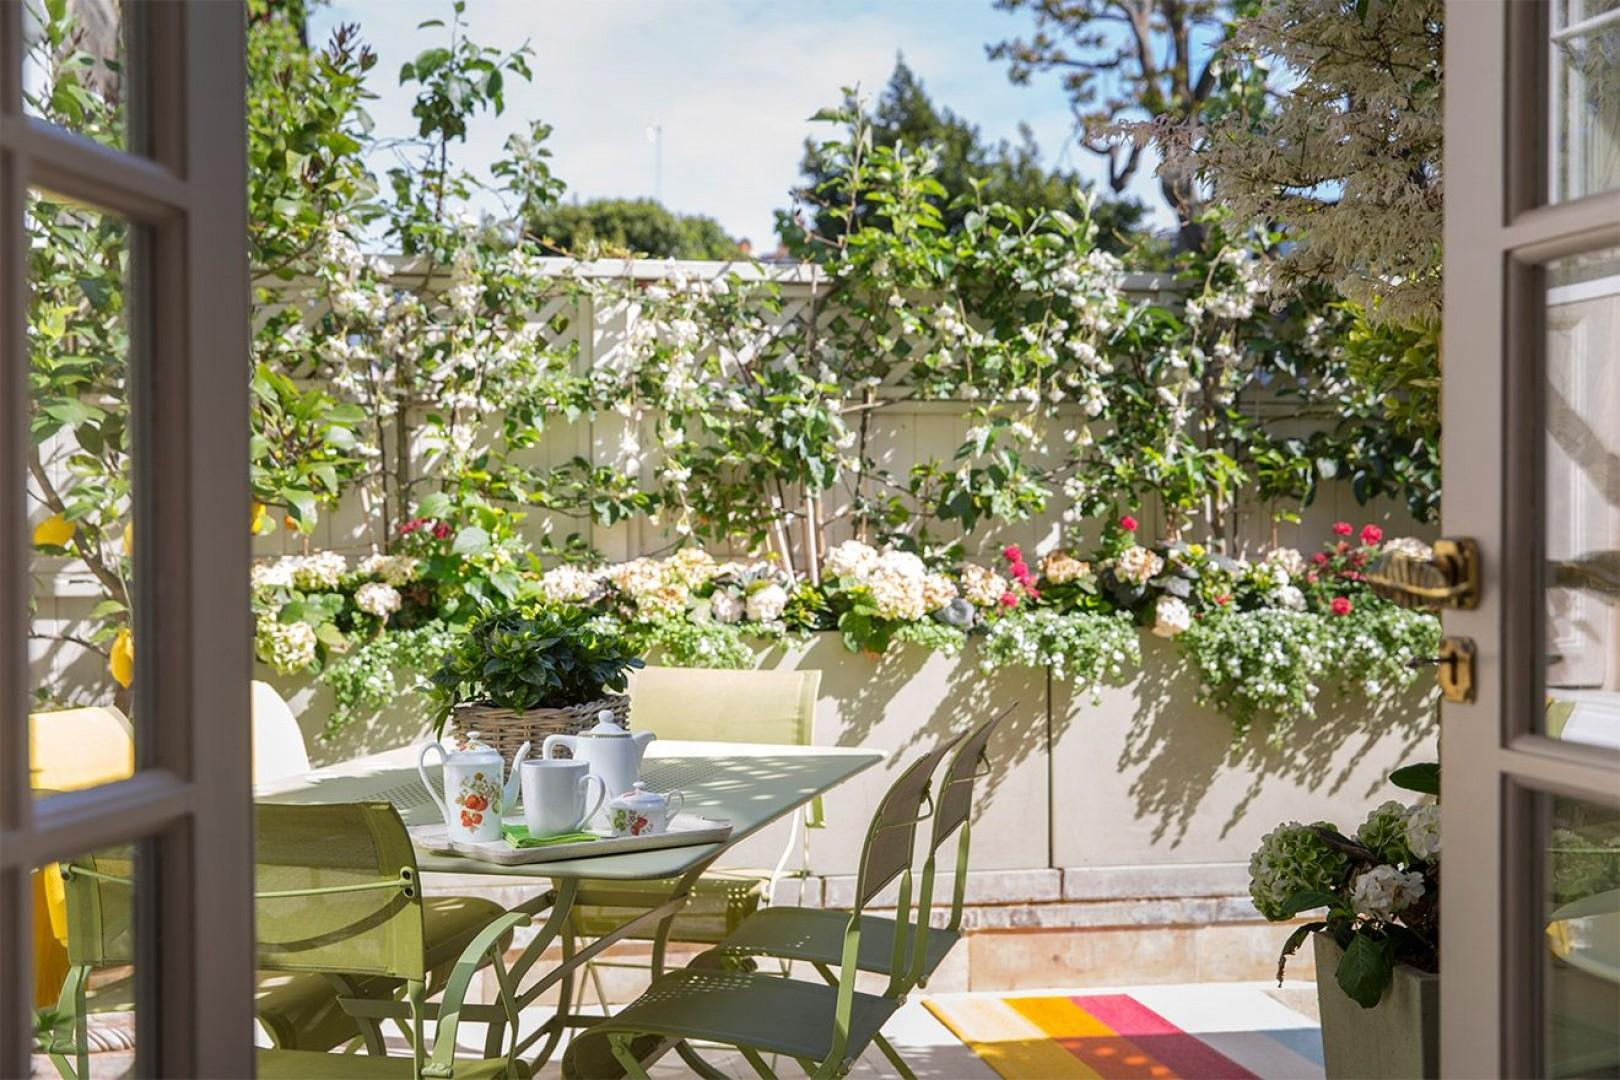 Outdoor dining is a special occasion on this lovely terrace